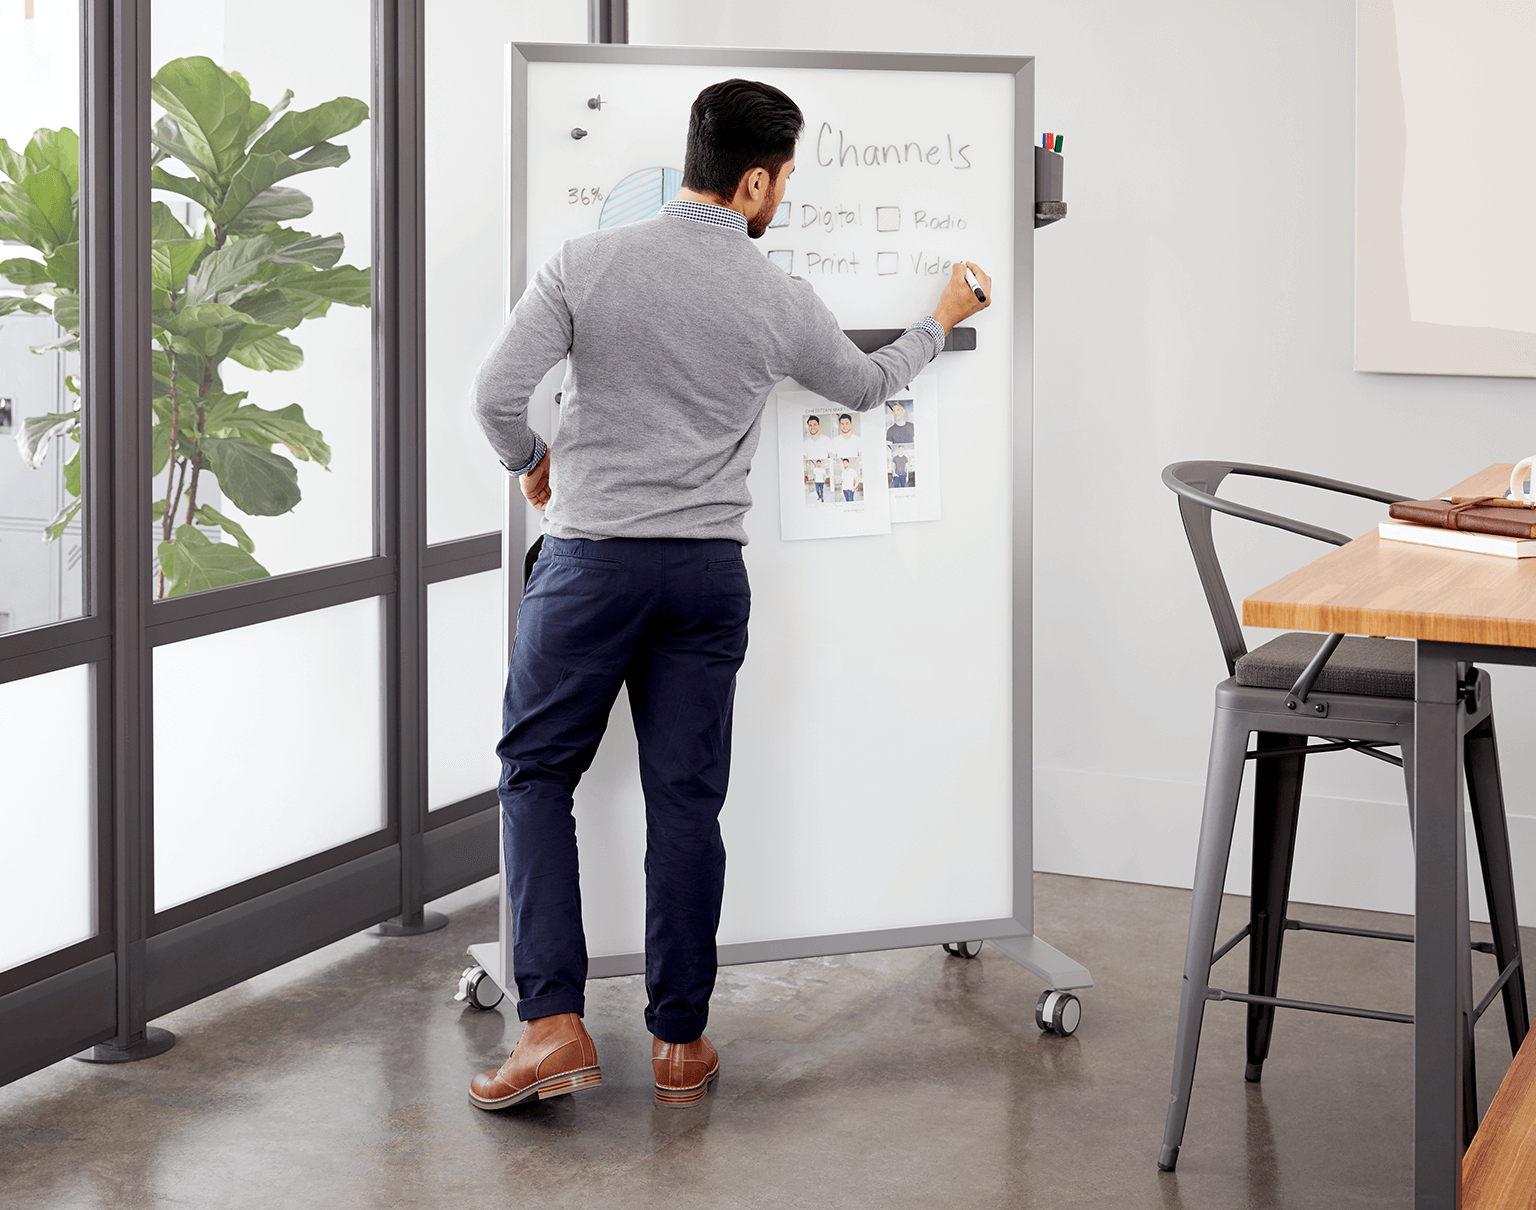 man writes on a markerboard to present data in a meeting